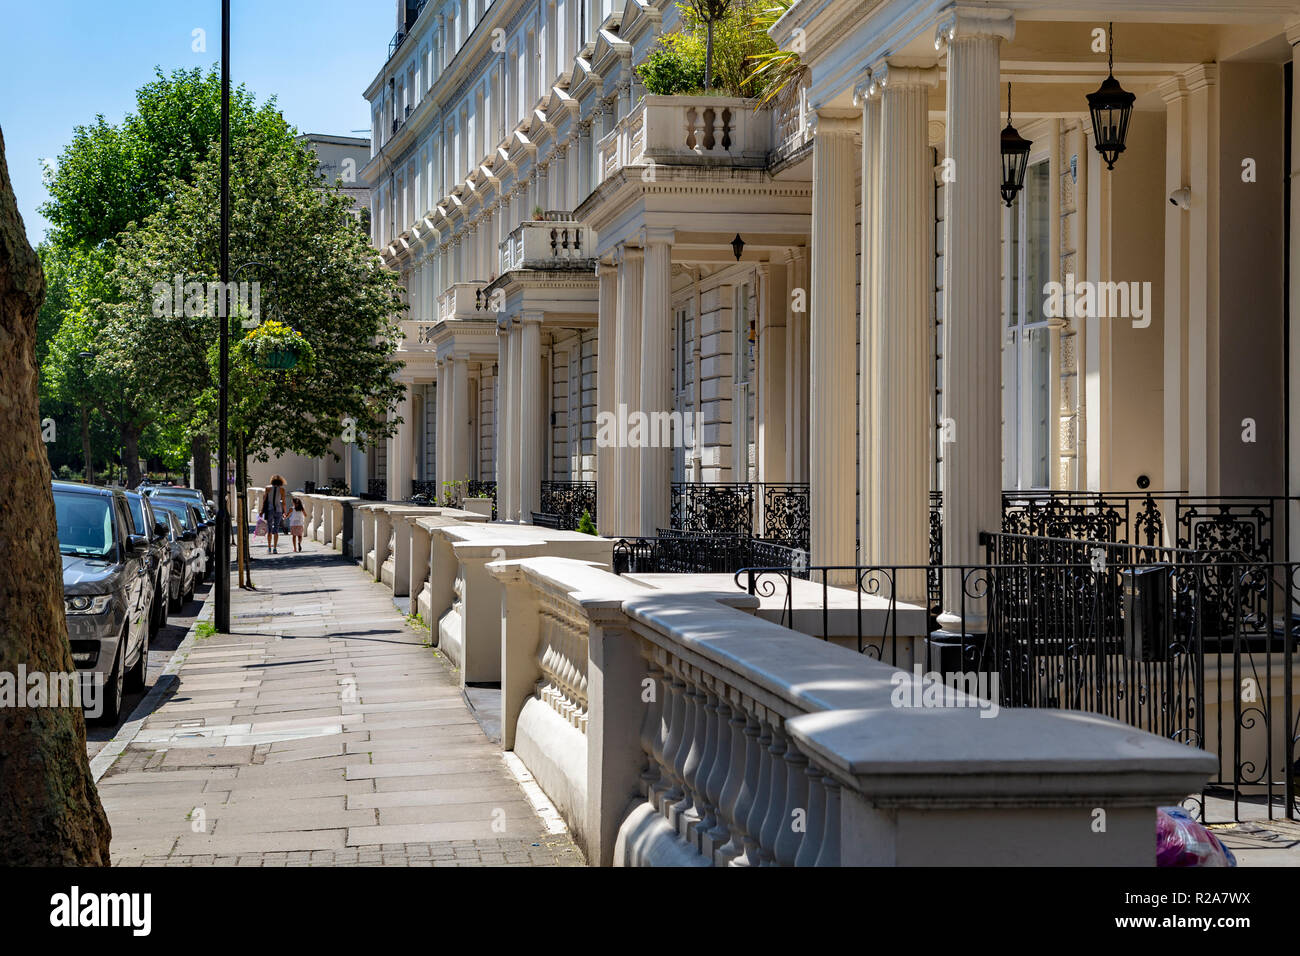 View of a row of colonnaded porch ways fronting houses in central London, United Kingdom - Stock Image